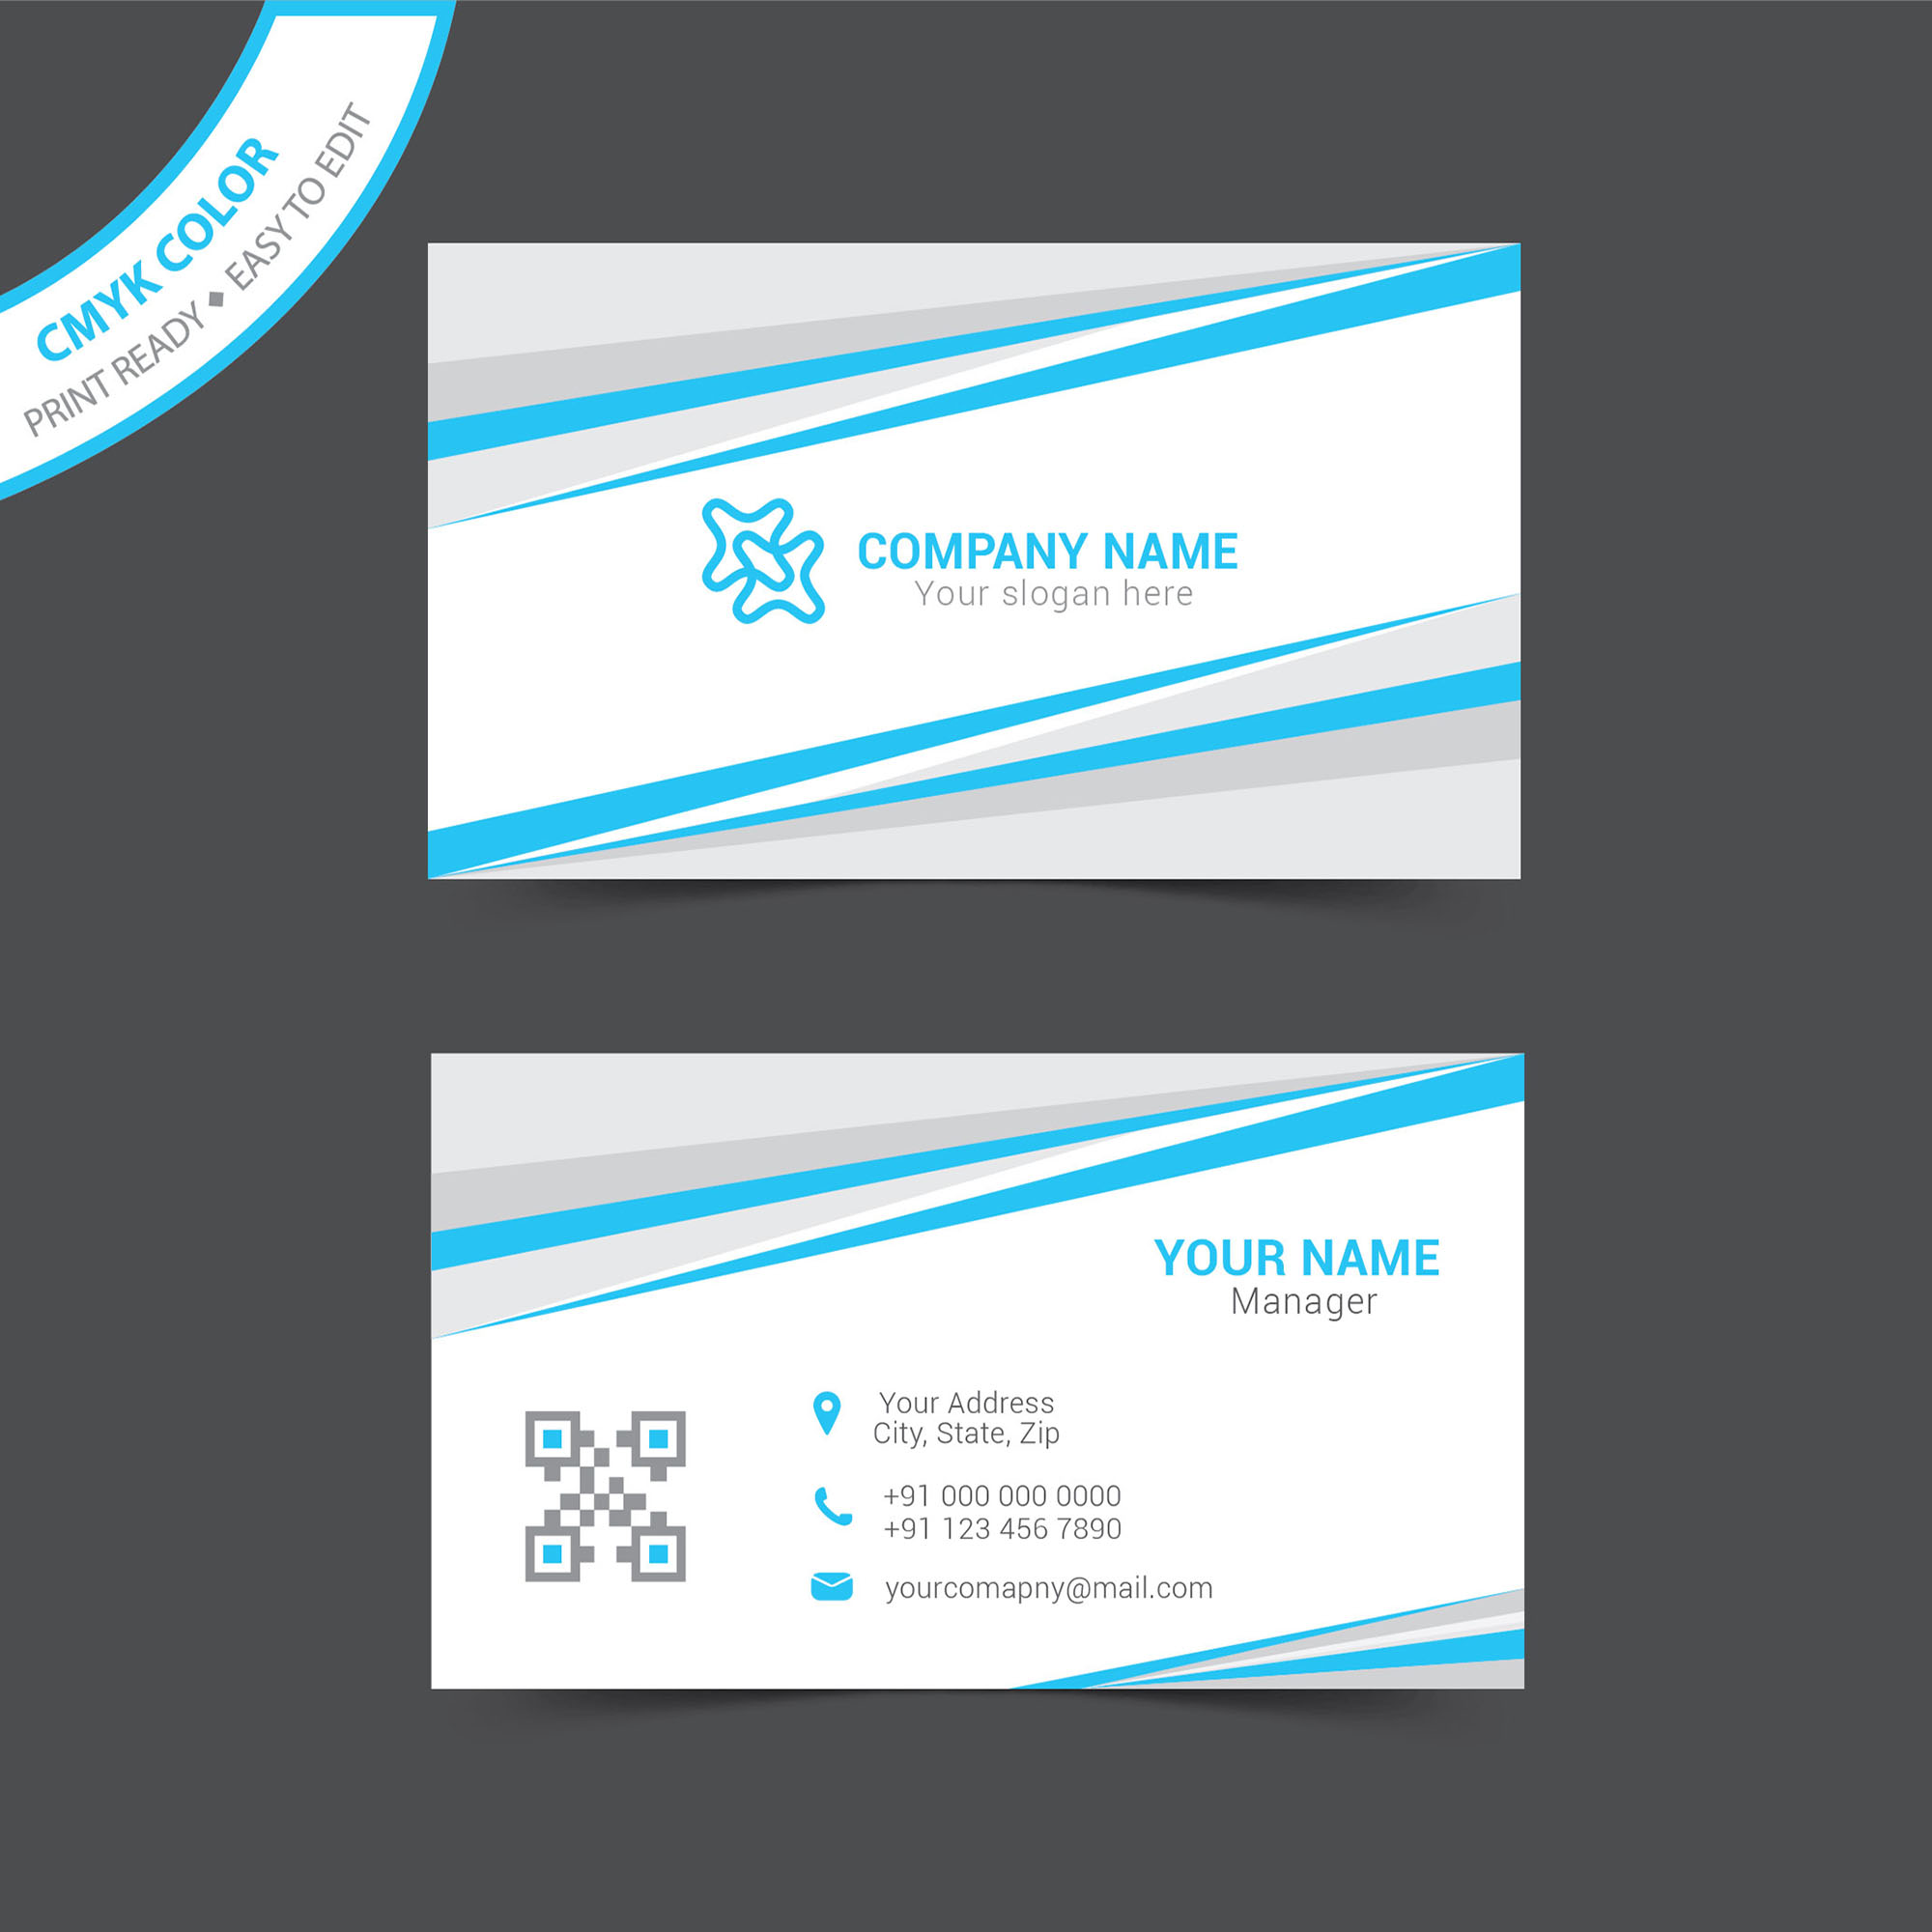 Simple business card template free download wisxi business card business cards business card design business card template design templates cheaphphosting Image collections